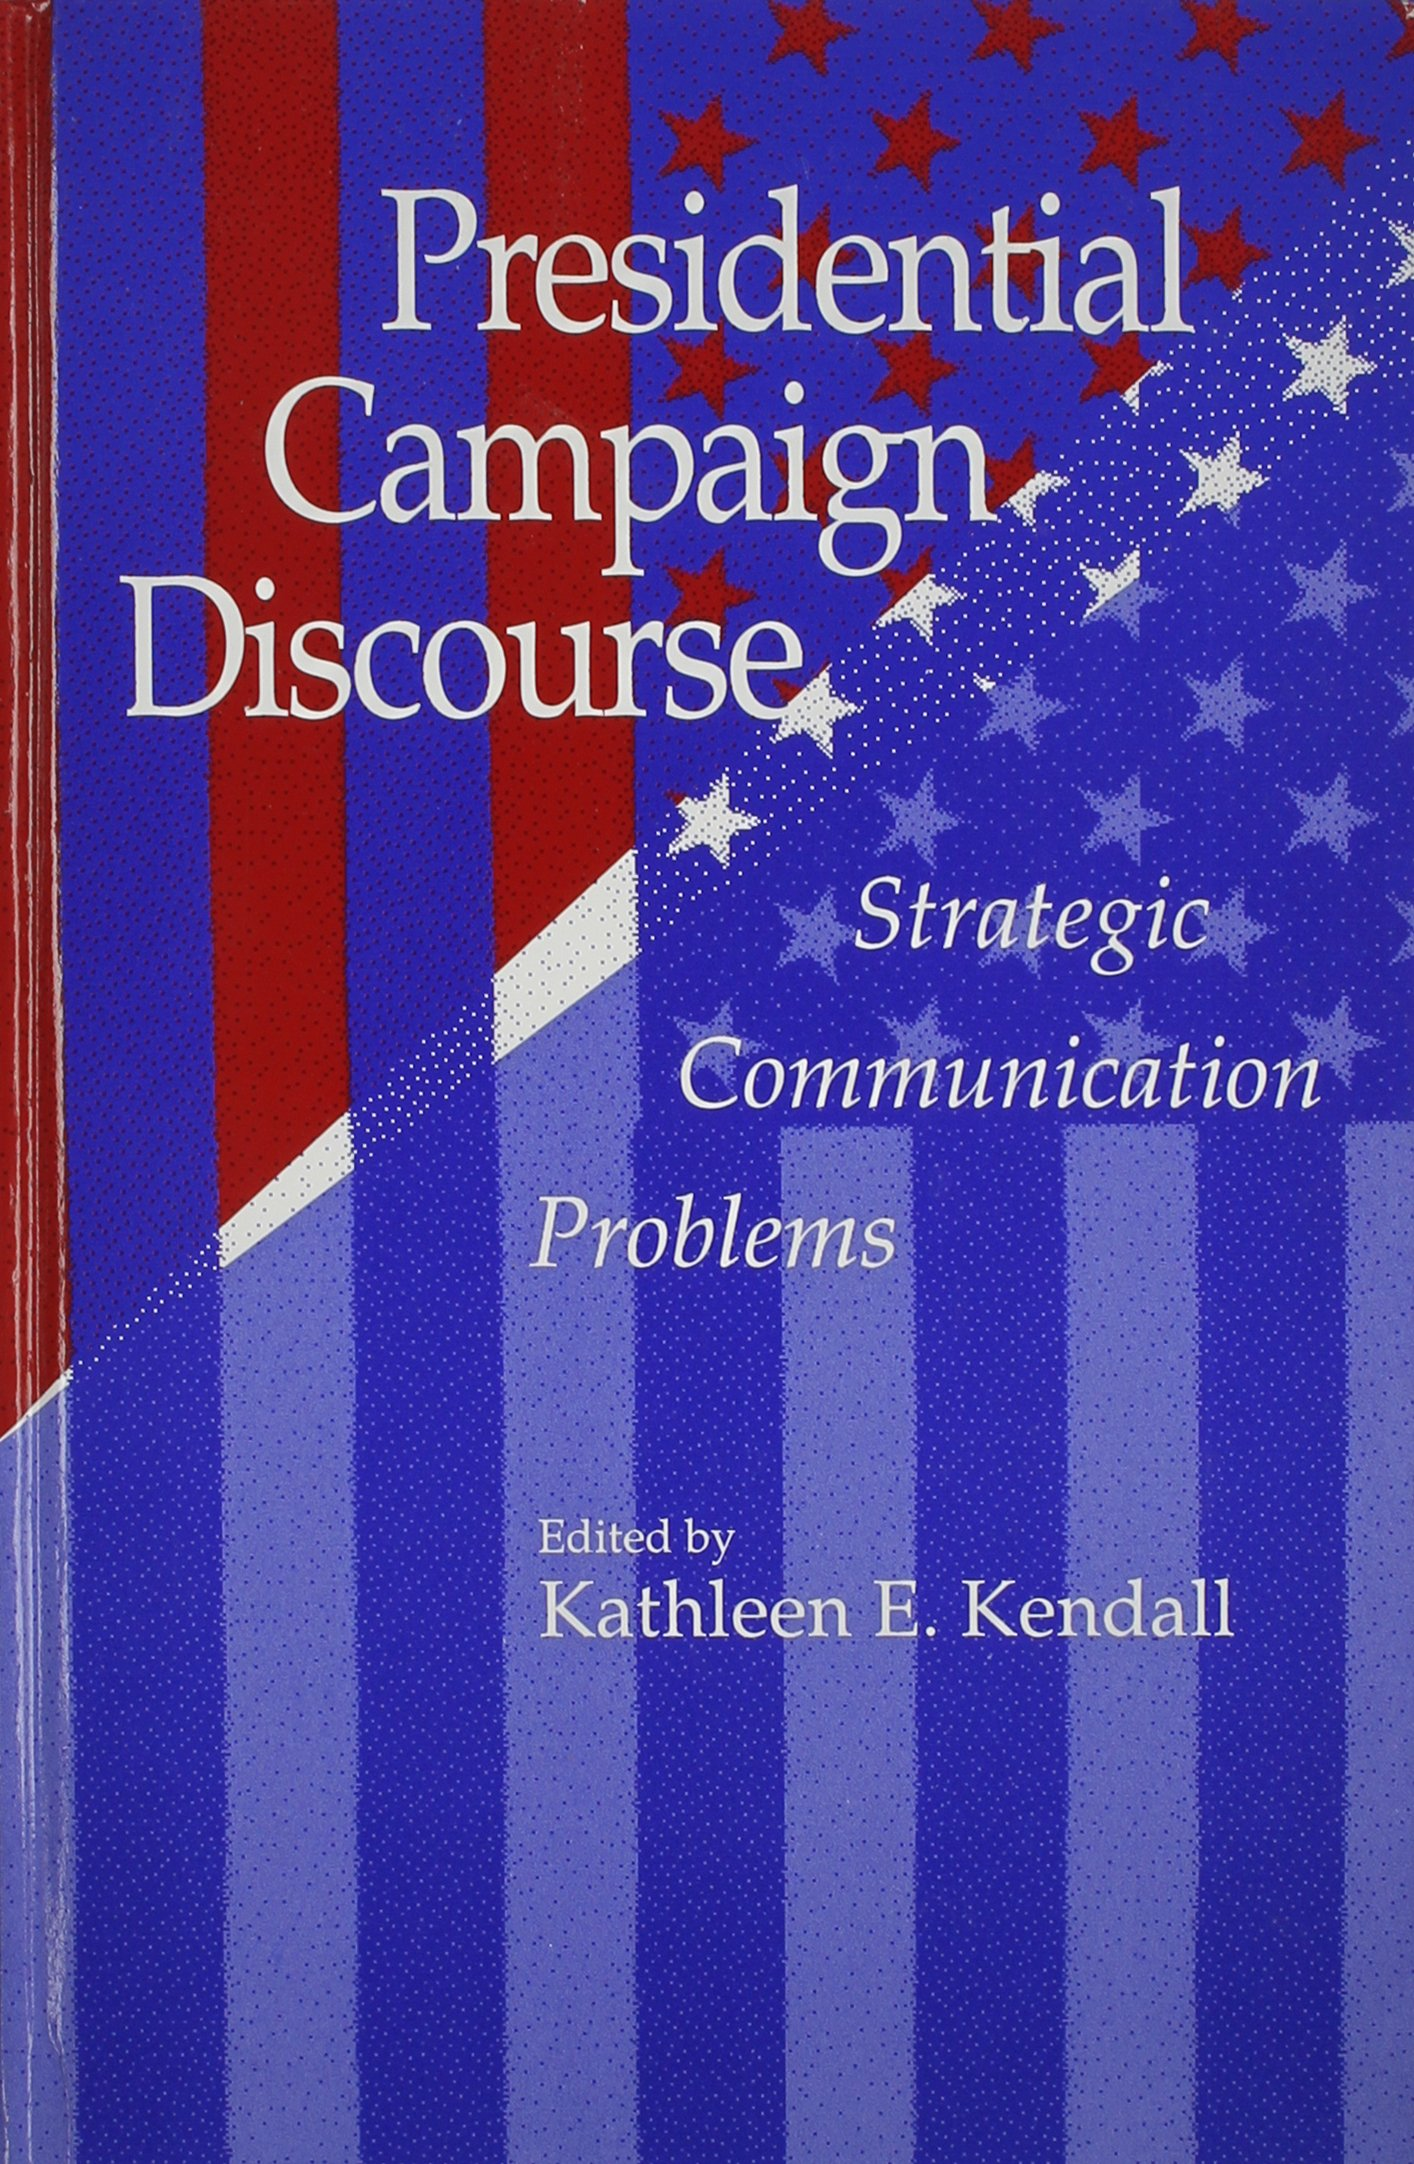 Presidential Campaign Discourse: Strategic Communication Problems (Suny Series in Human Communication Processes)